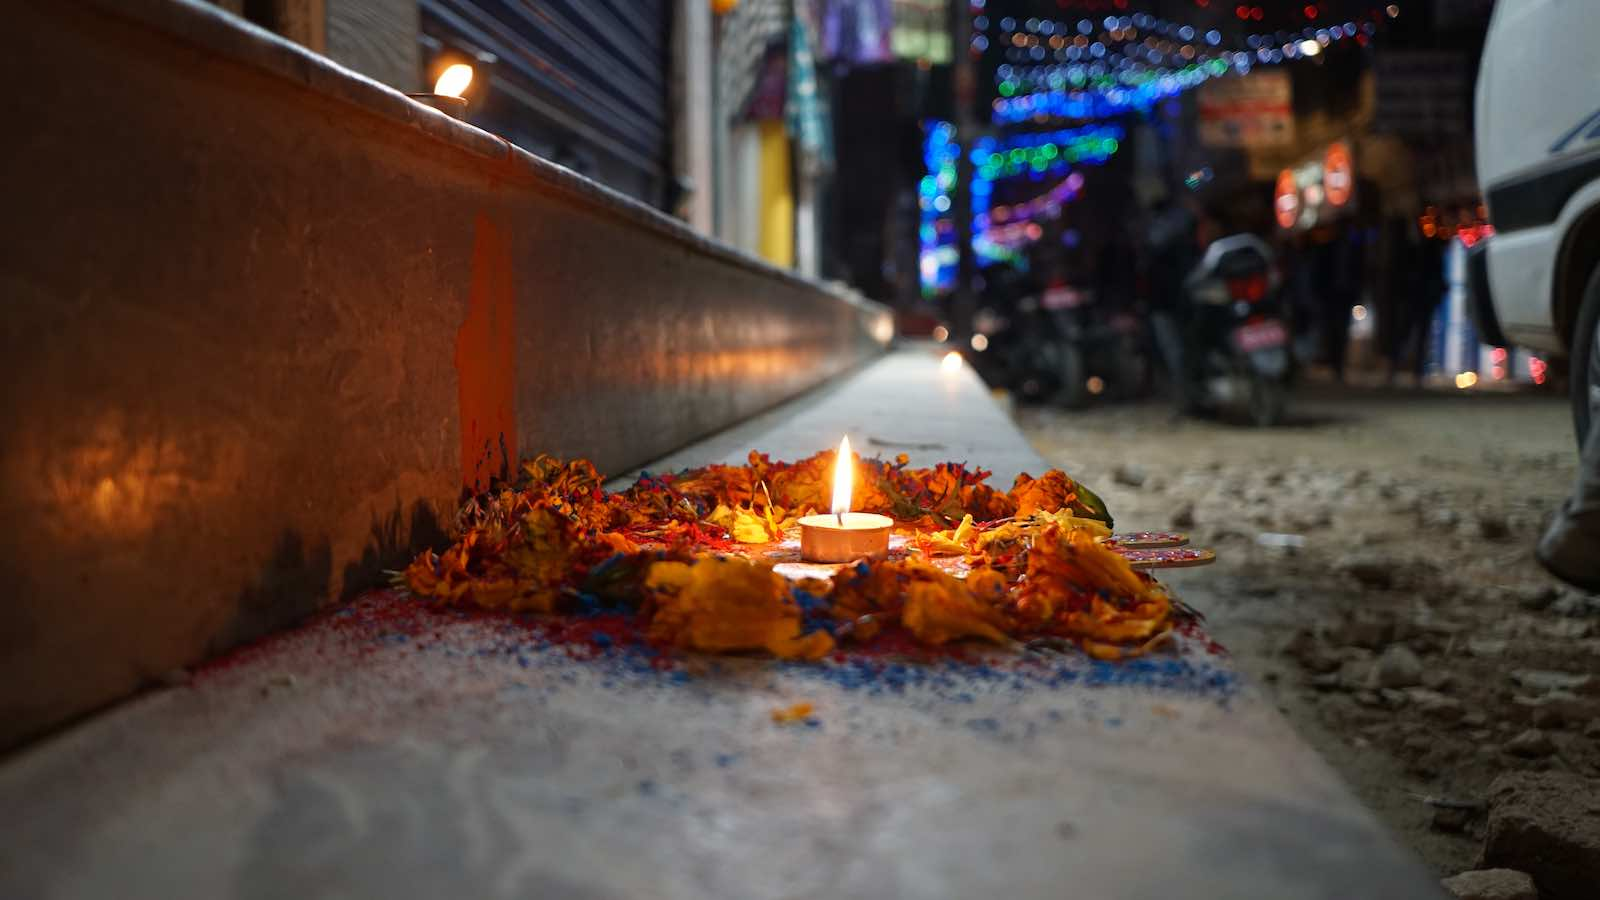 I got here right during Diwali, and on one of the nights every shop put out these offerings or a colorful flower pattern called Rangoli in front of their shop.